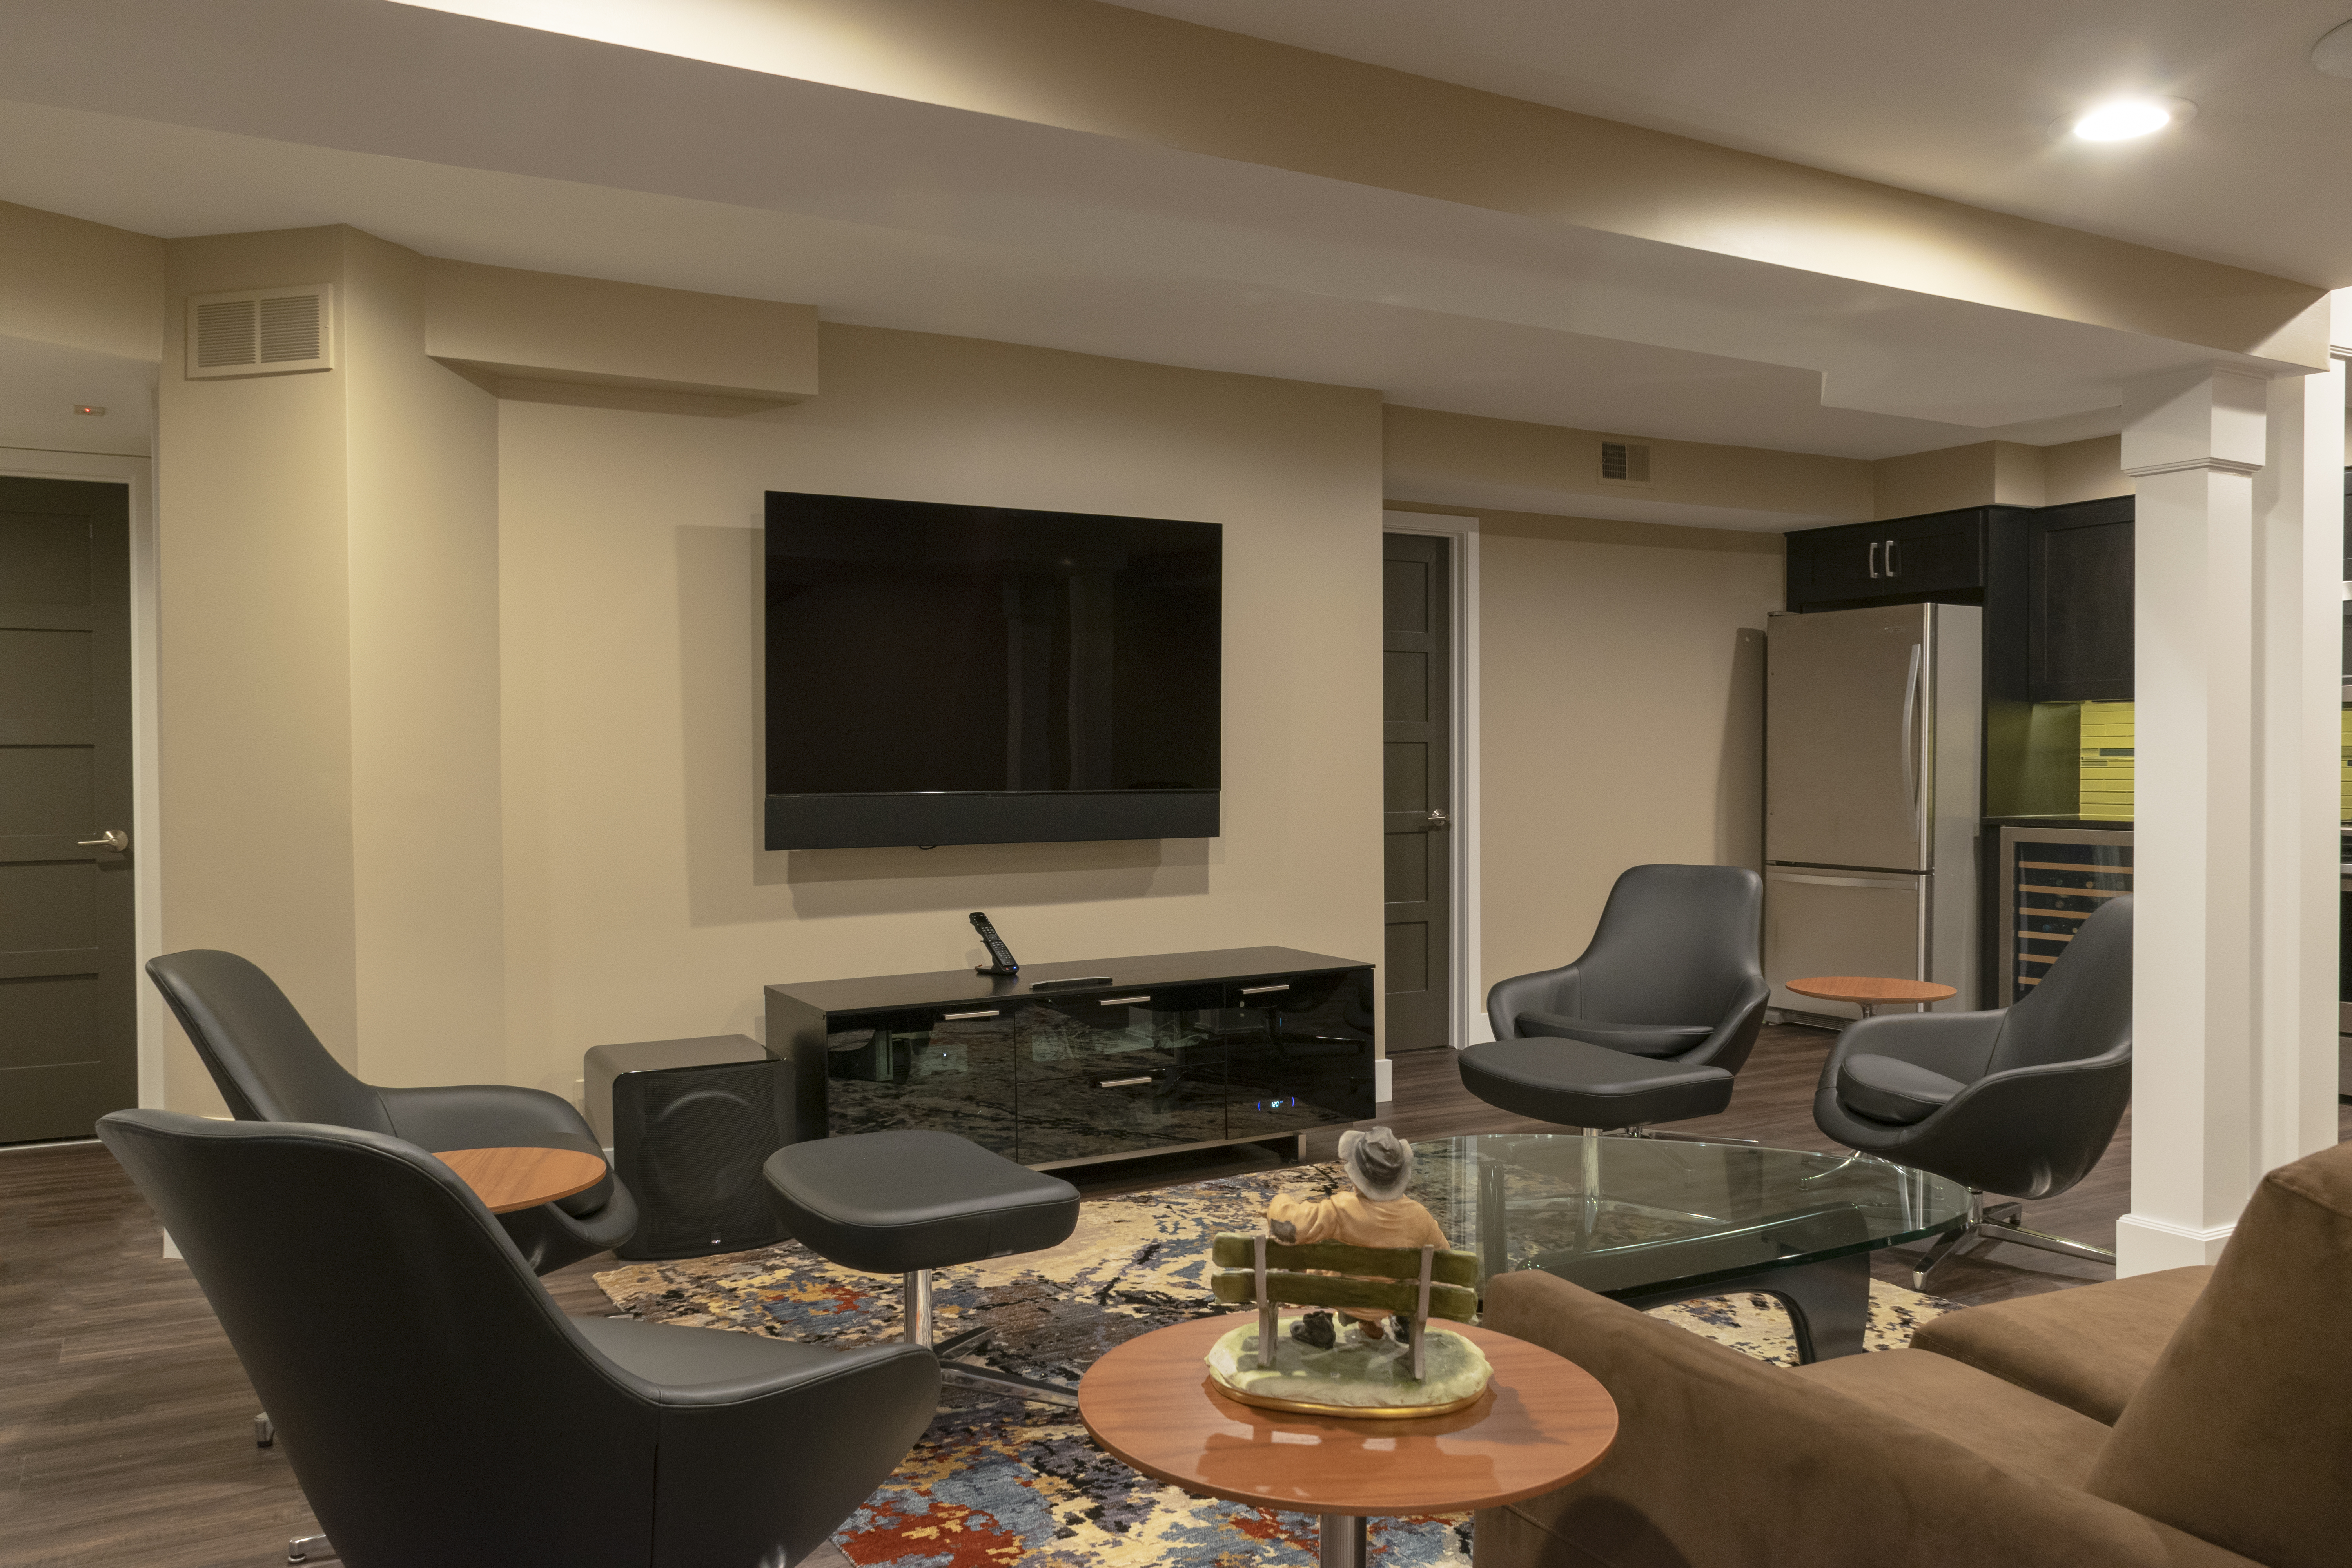 Basement Remodel with Entertainment Room